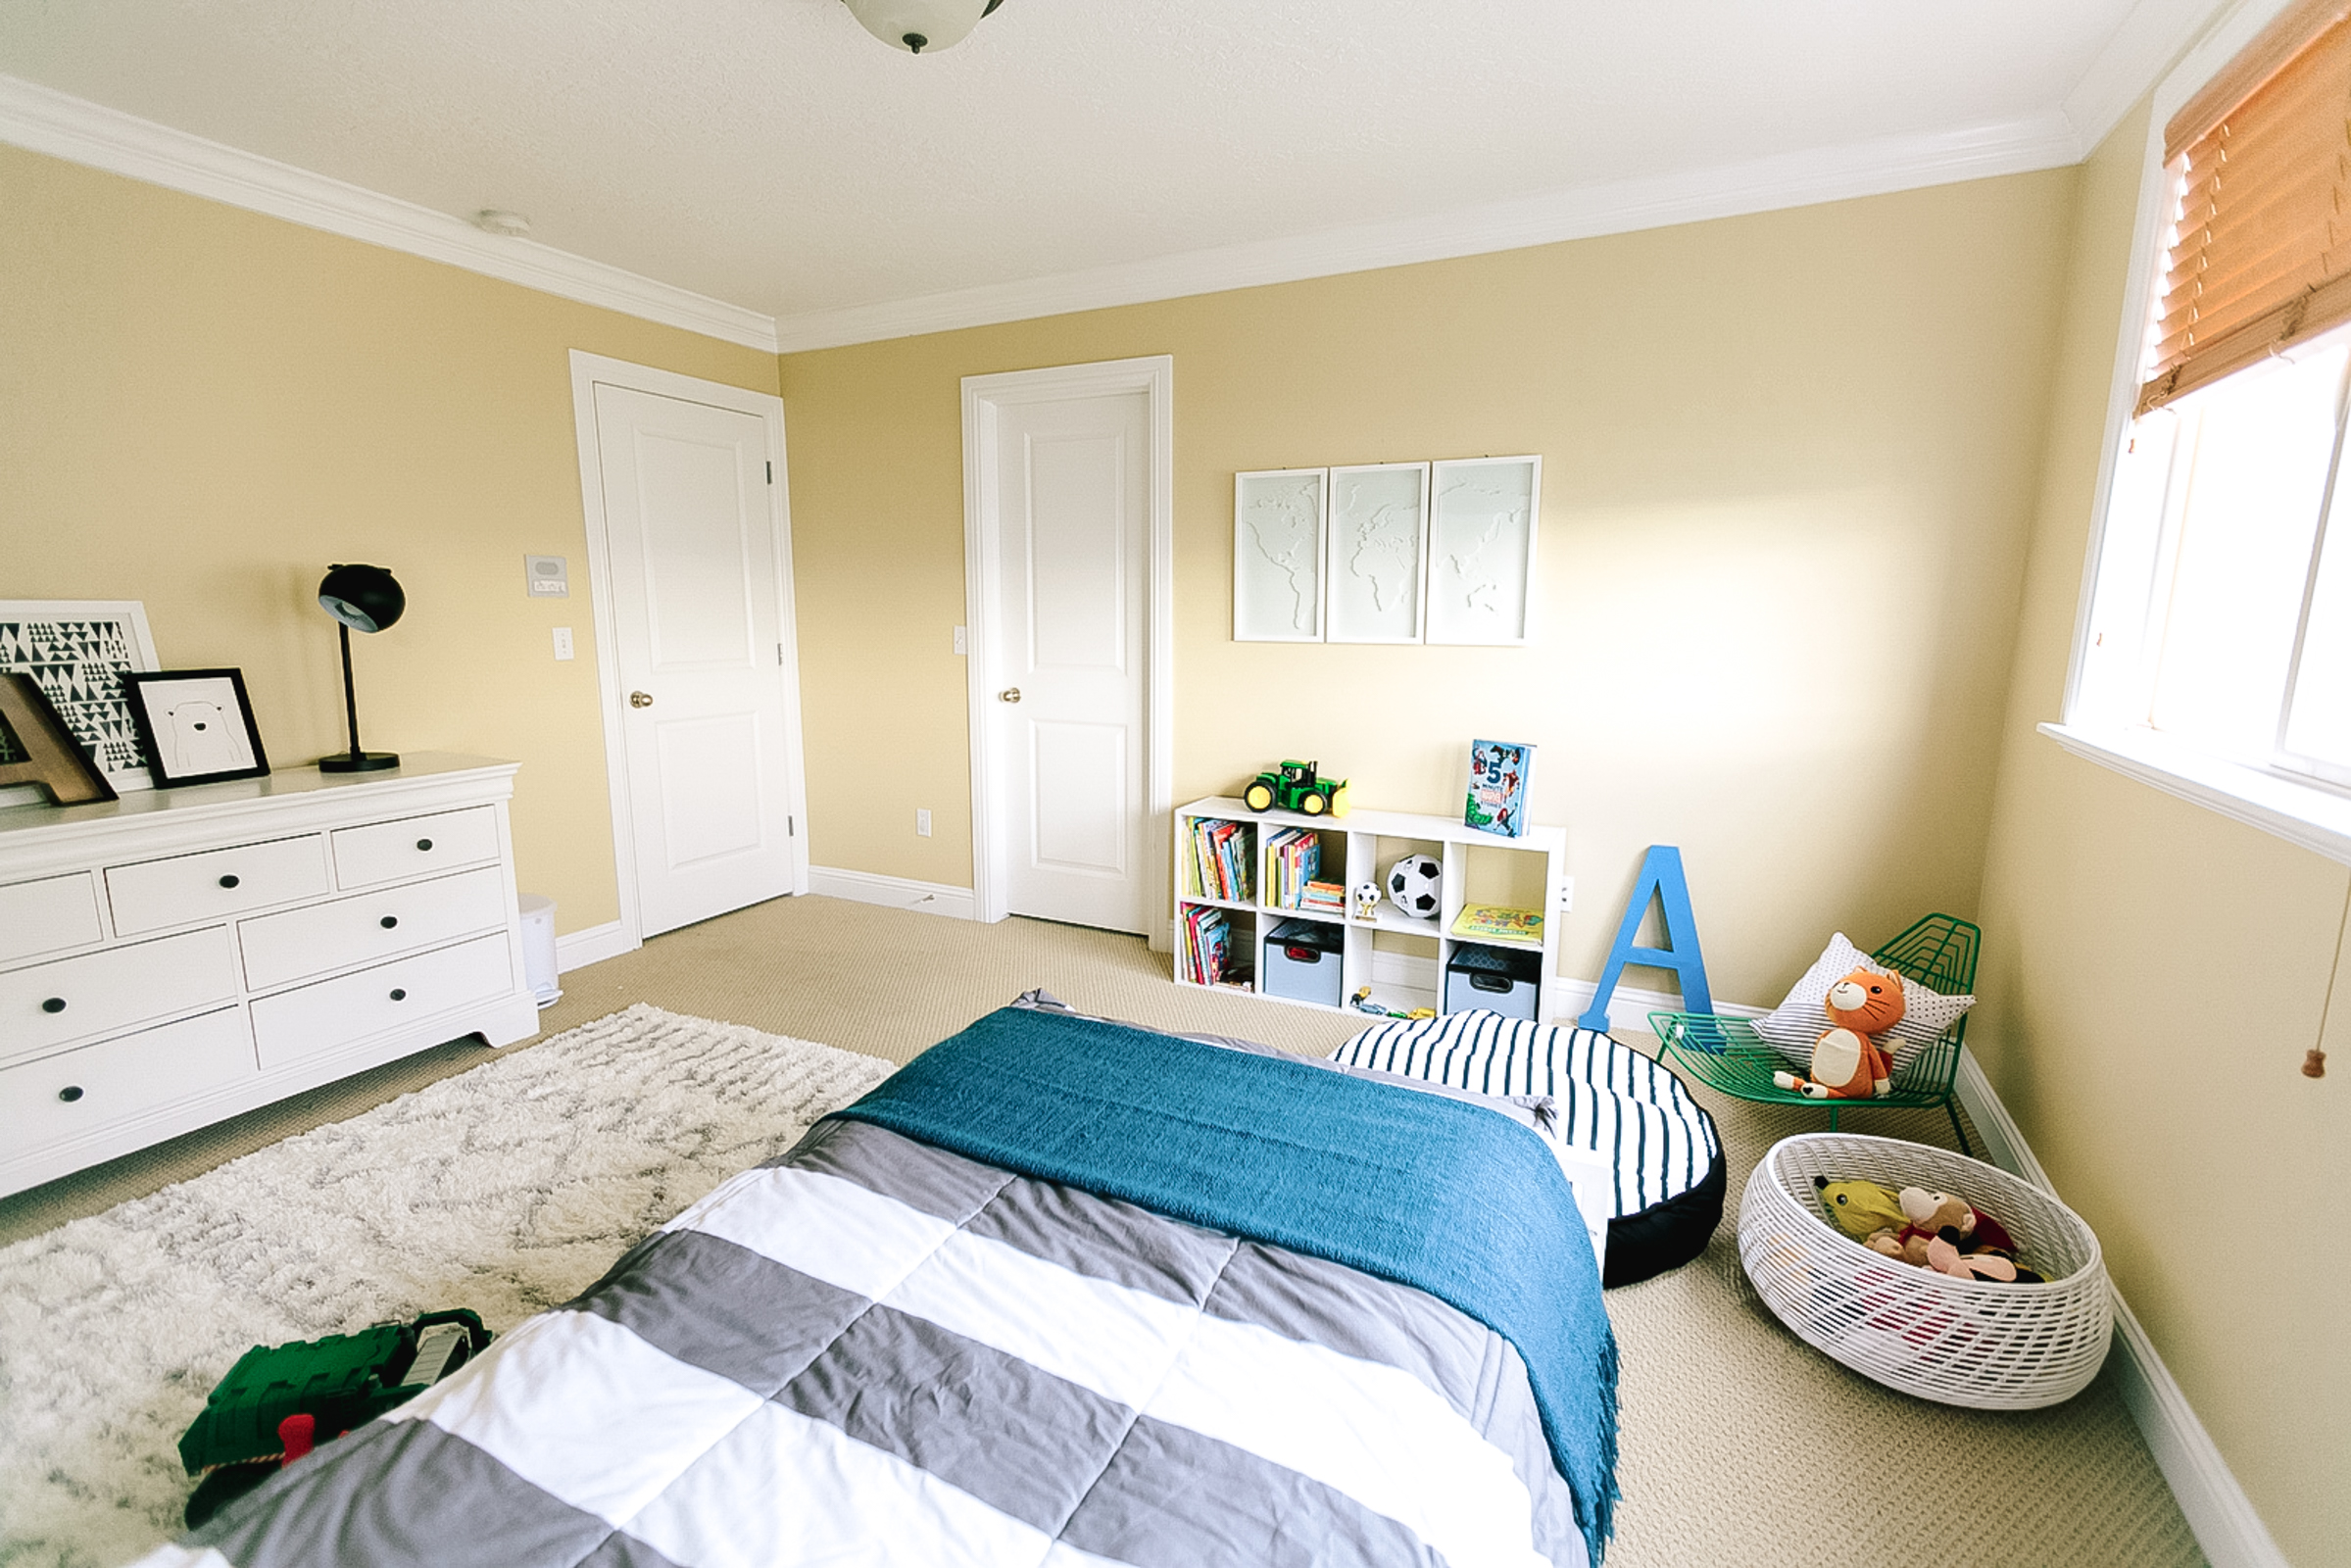 Boy's Bedroom with Havenly 10